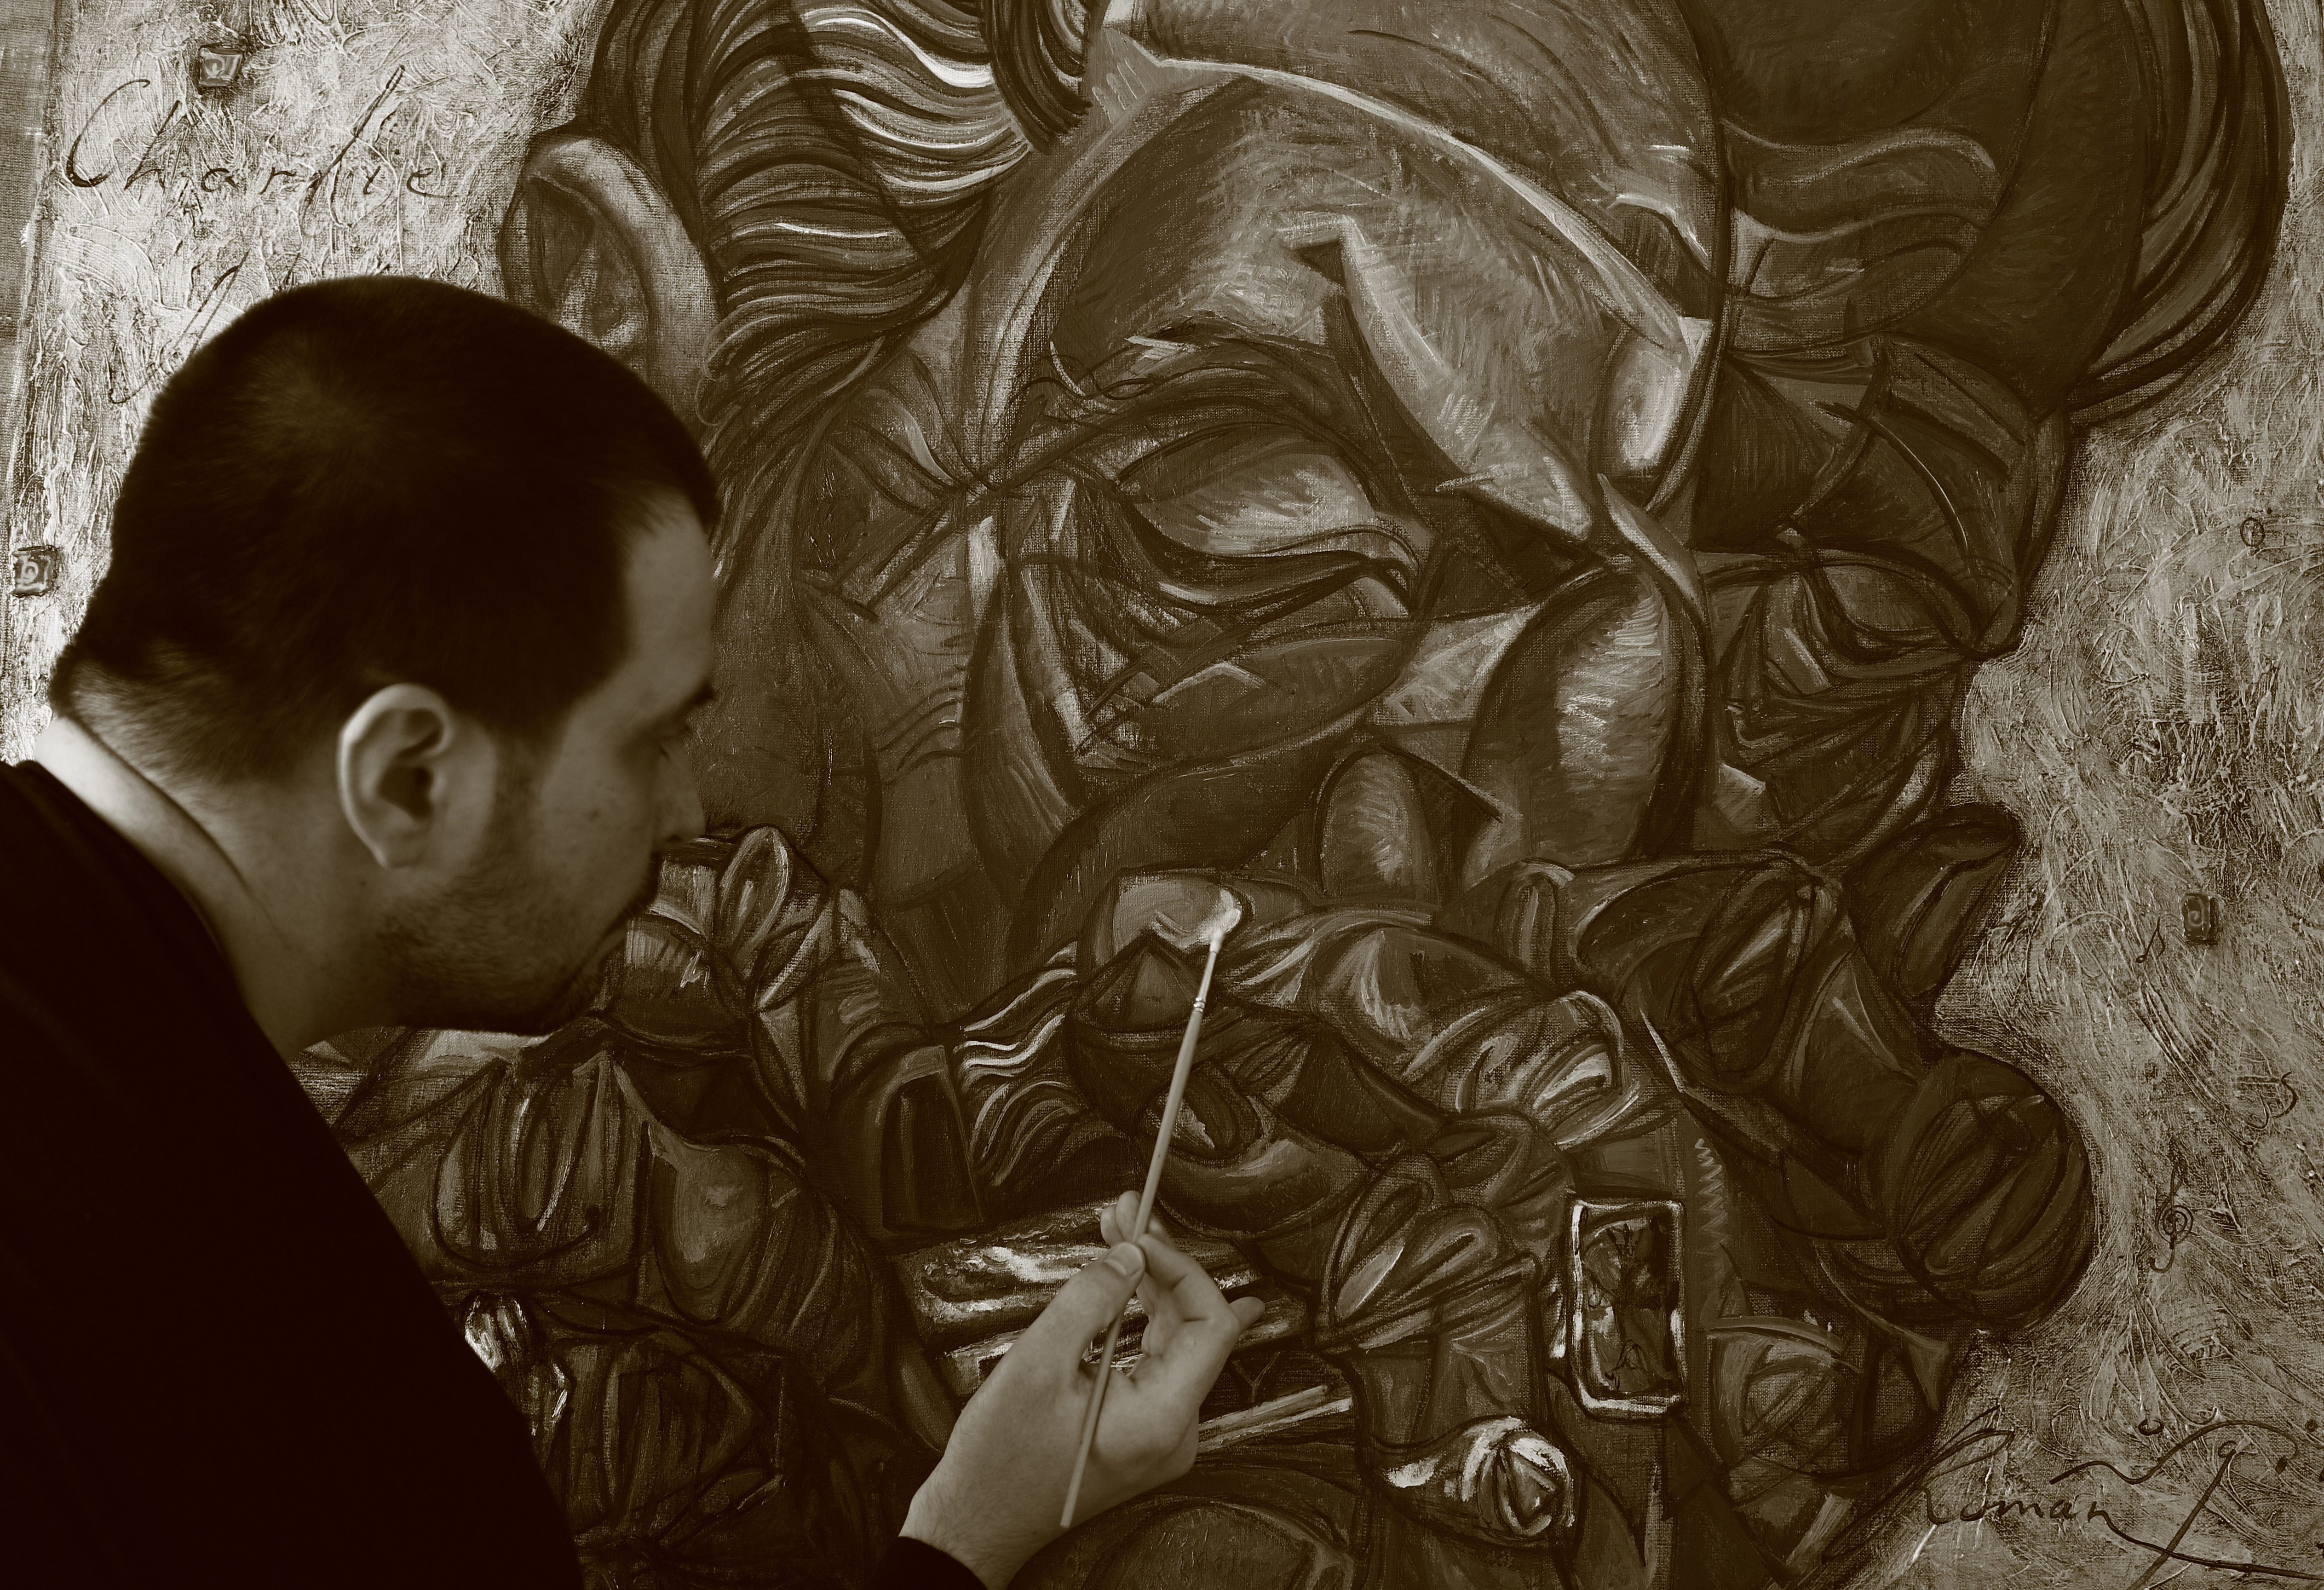 ROMAN NOGIN IN PROCESS OF PAINTING